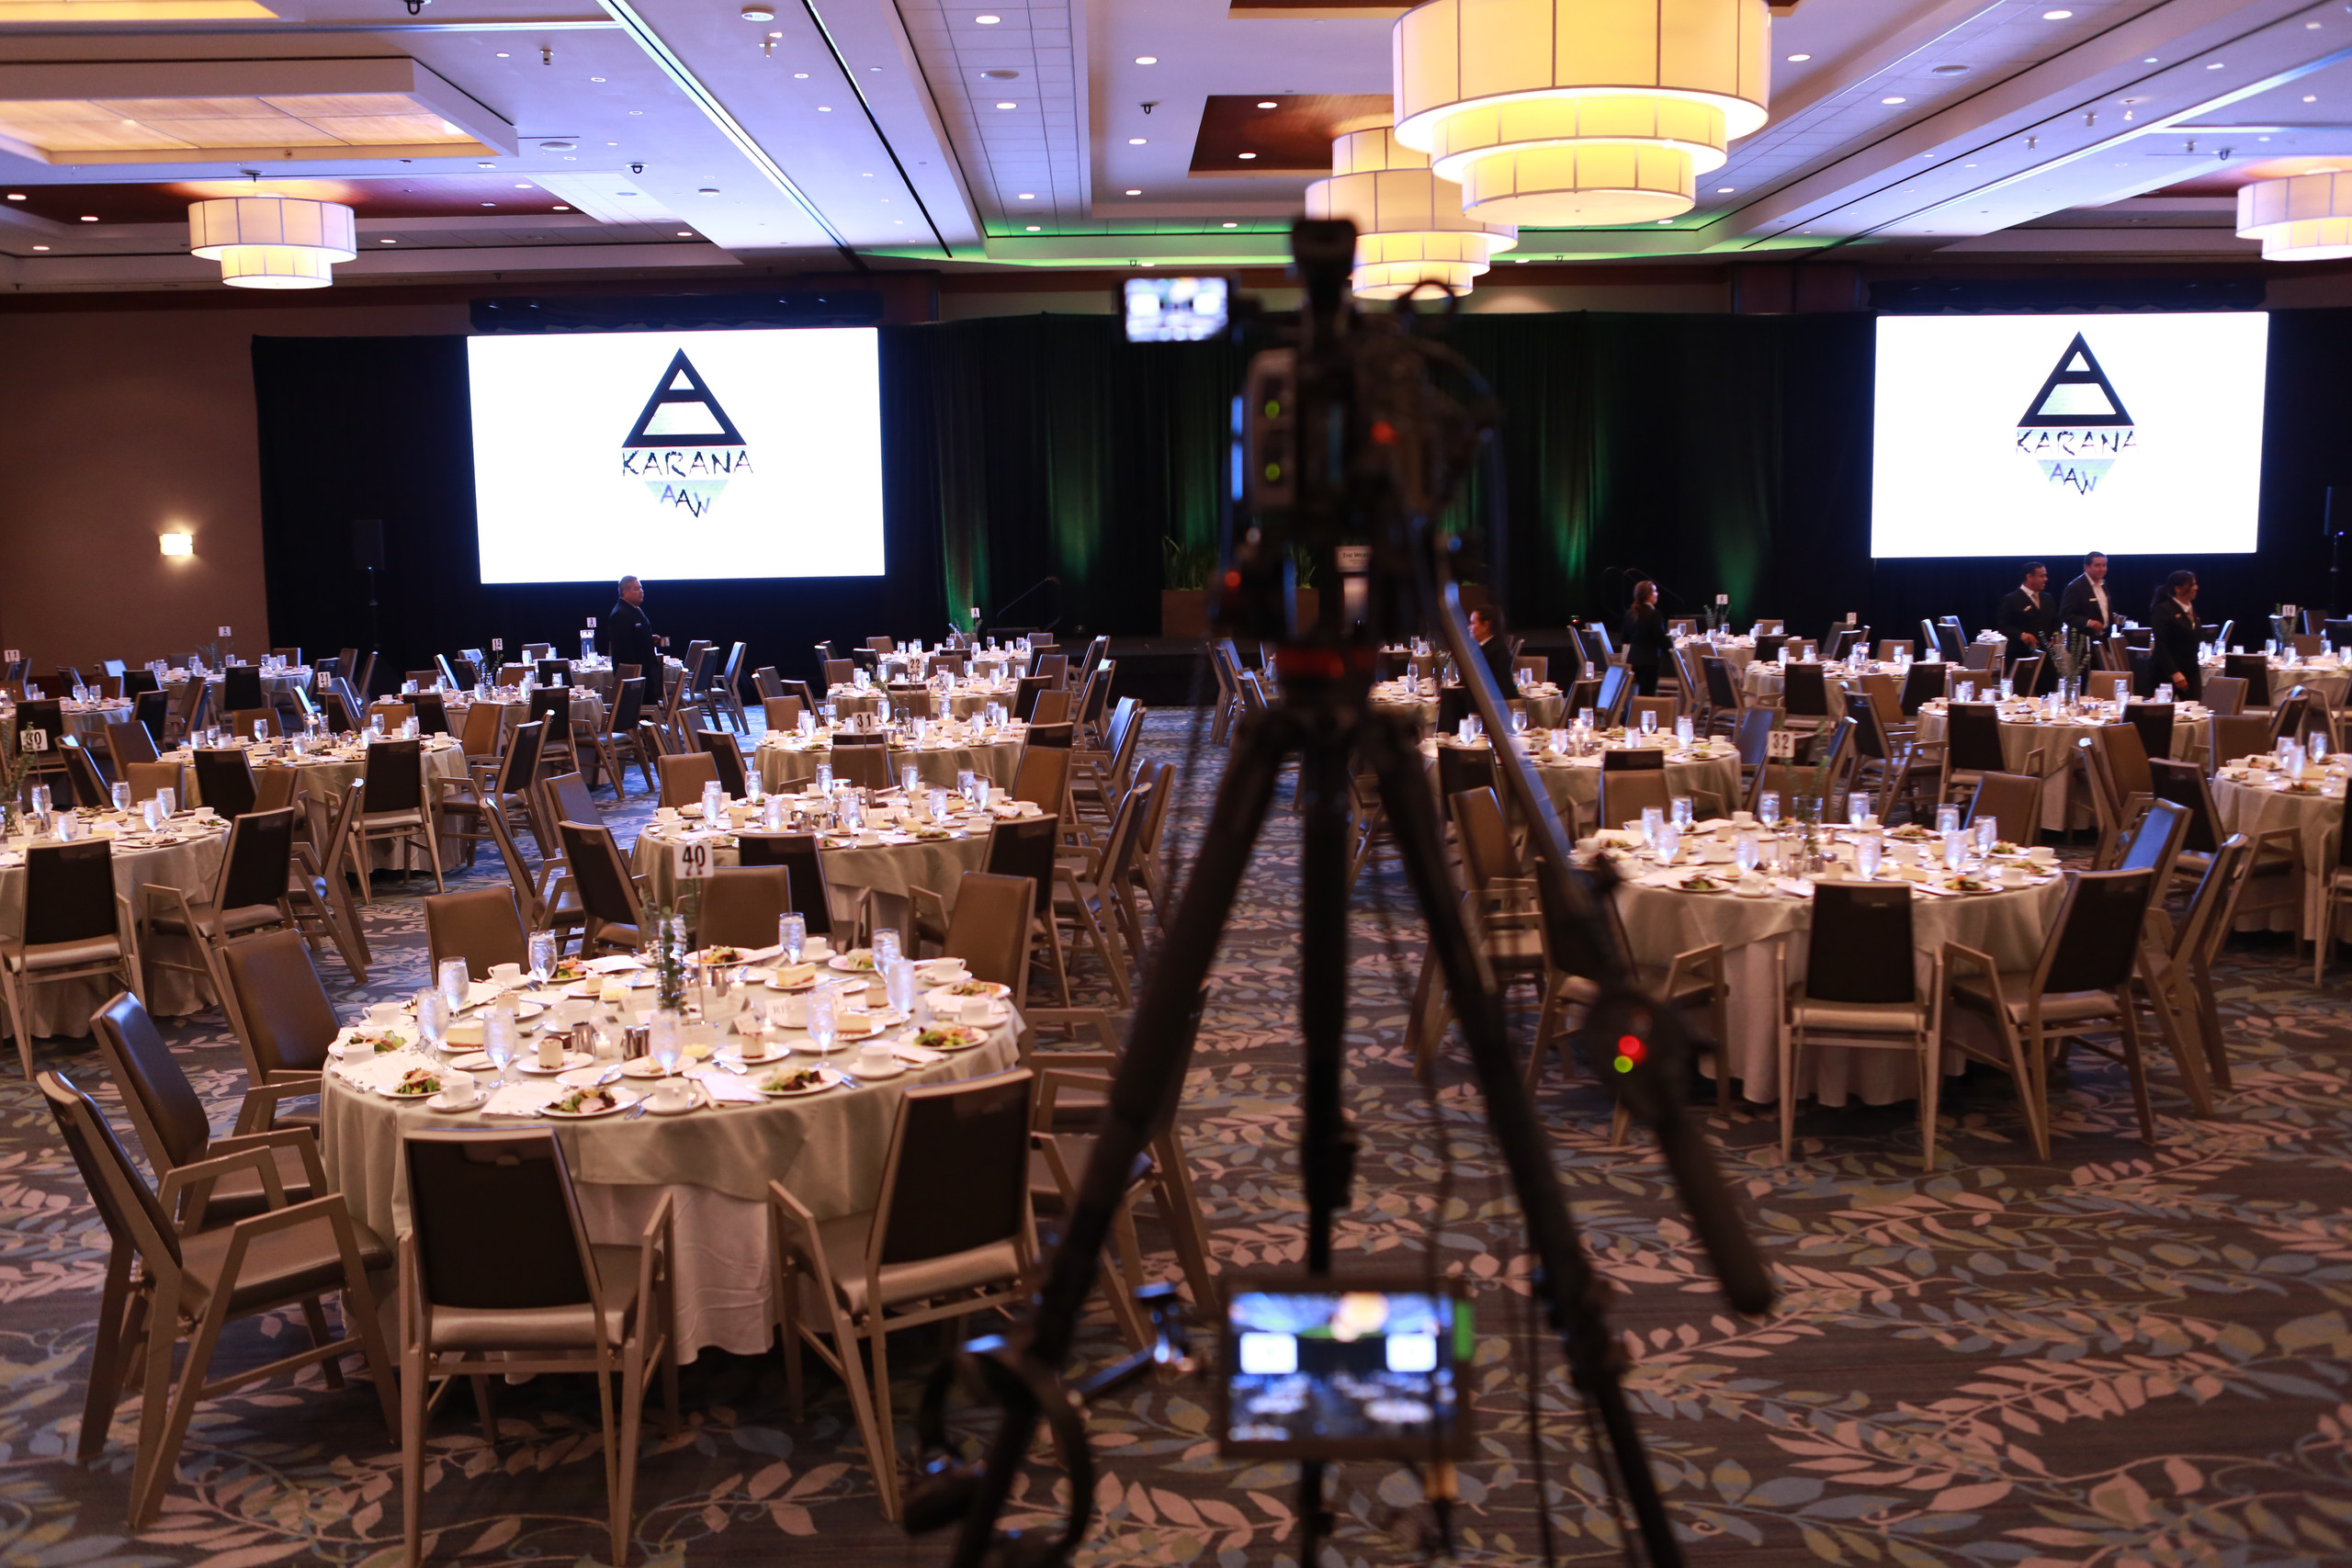 Camera technician for Image Magnification (IMAG) in events in Houston